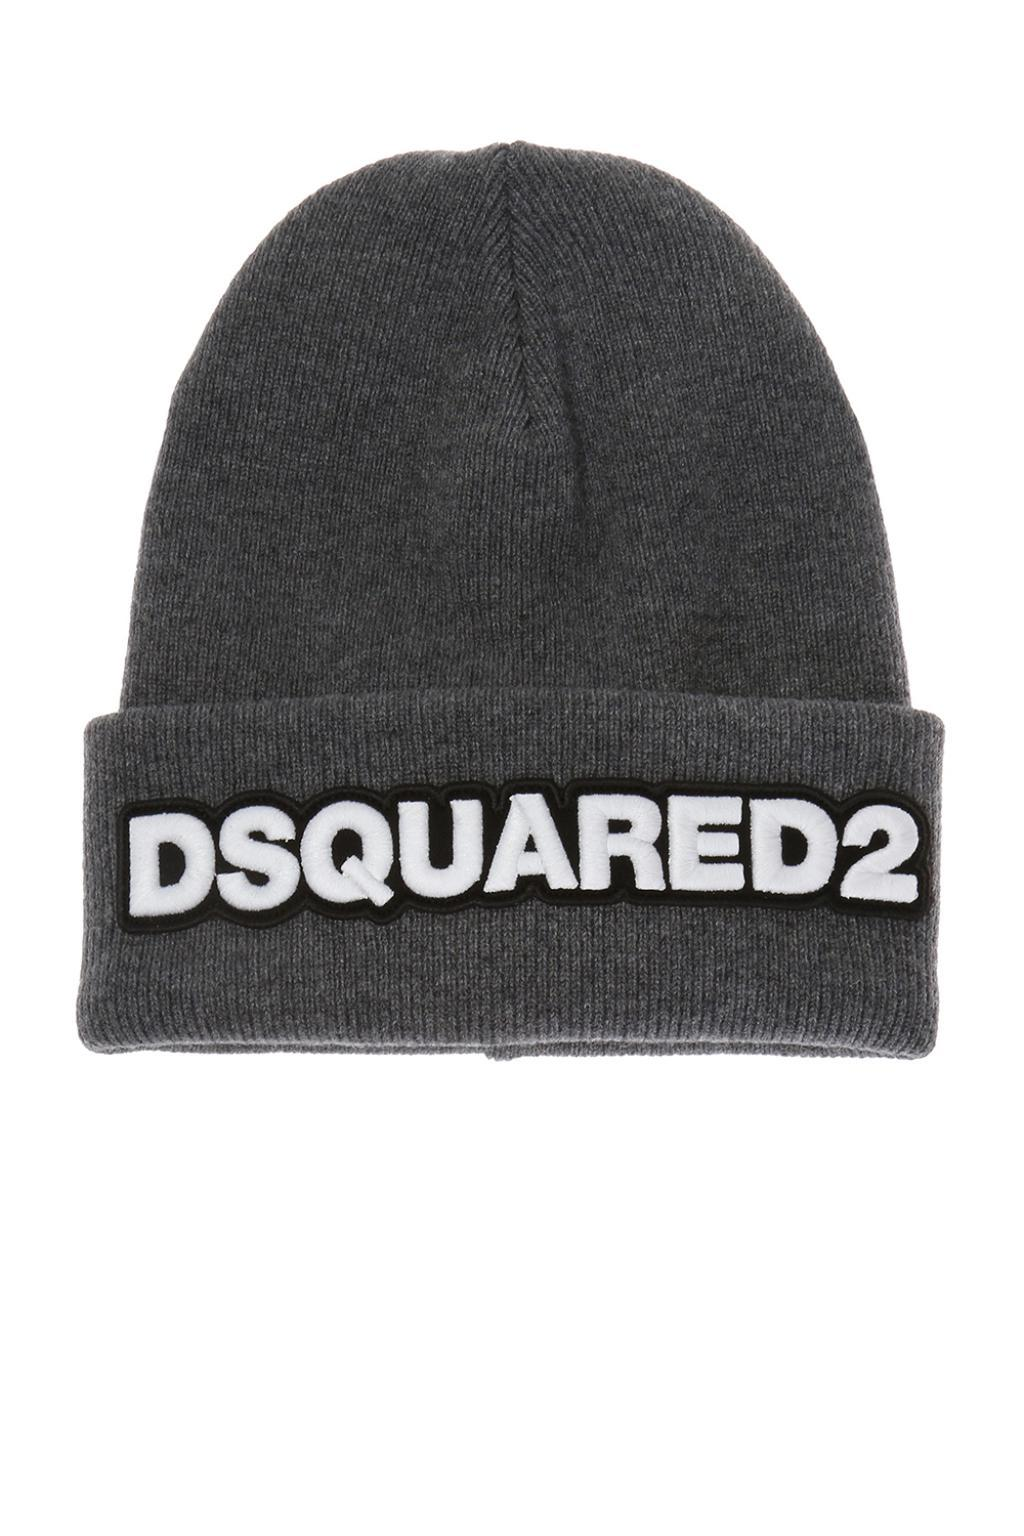 Lyst - DSquared² Logo Hat in Gray for Men - Save 26.285714285714292% 6d18634cd2e9